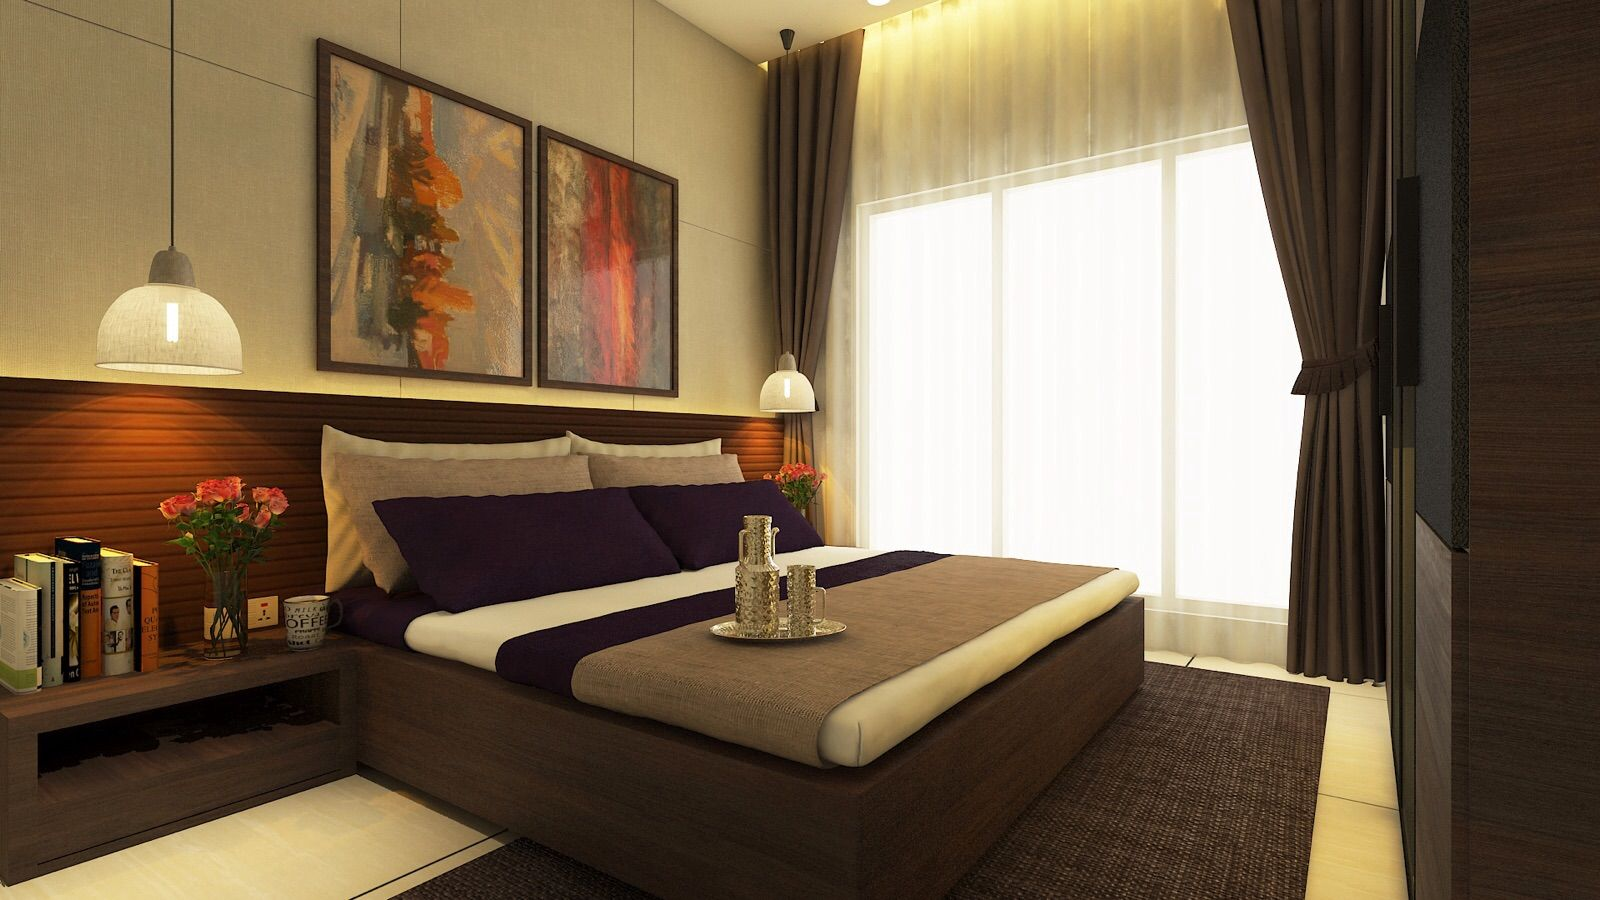 Master bedroom residence sample flat for zara habitats for Sample bedroom designs